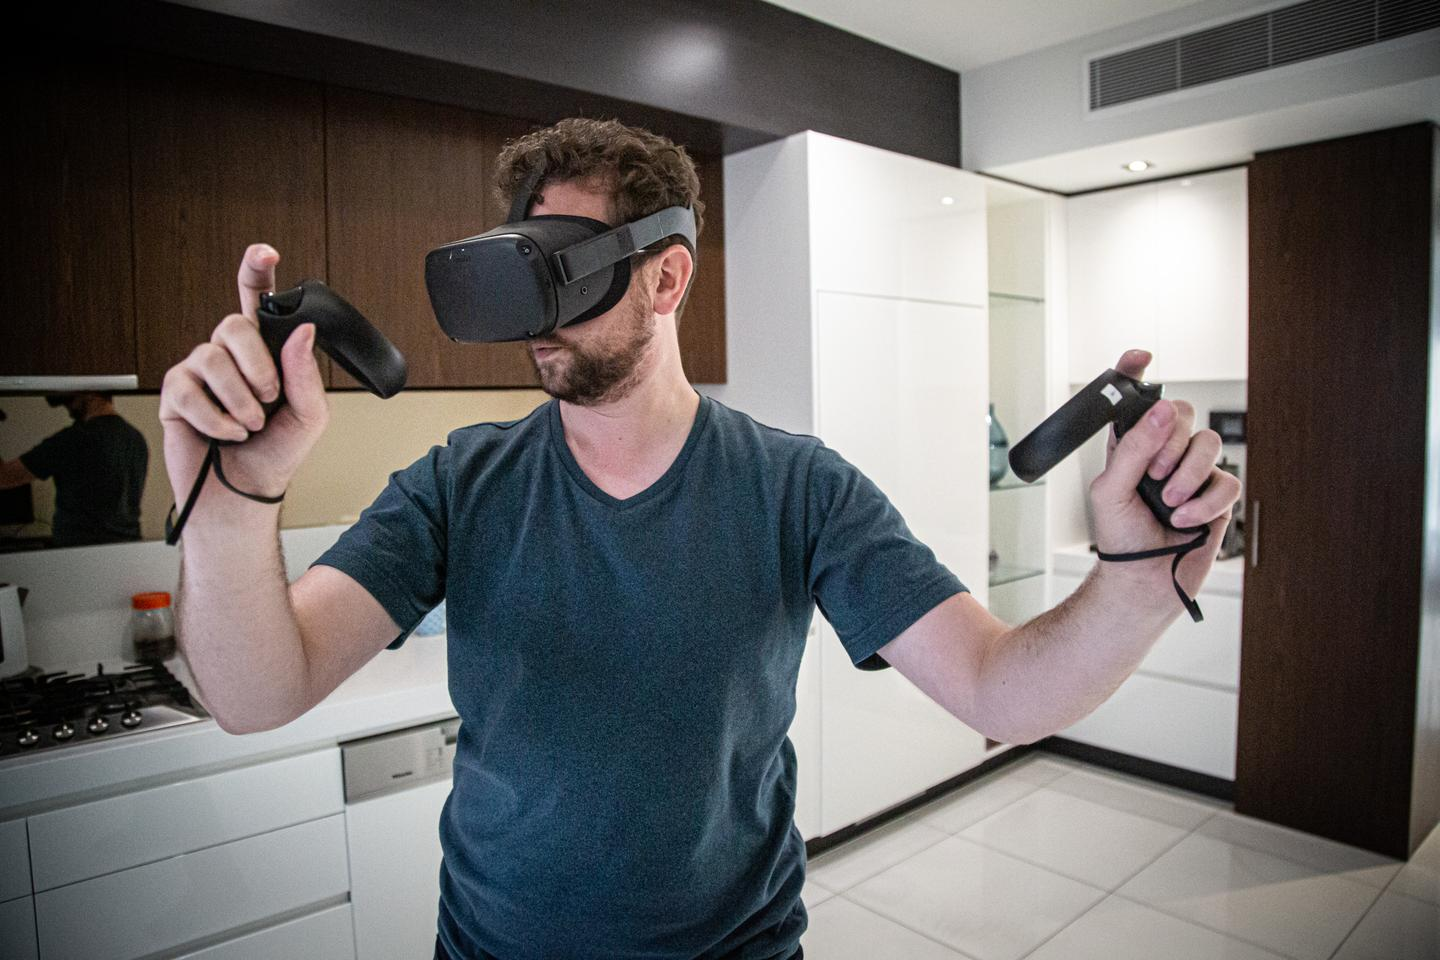 Setting up a room-scale or outdoor VR playing area is a breeze